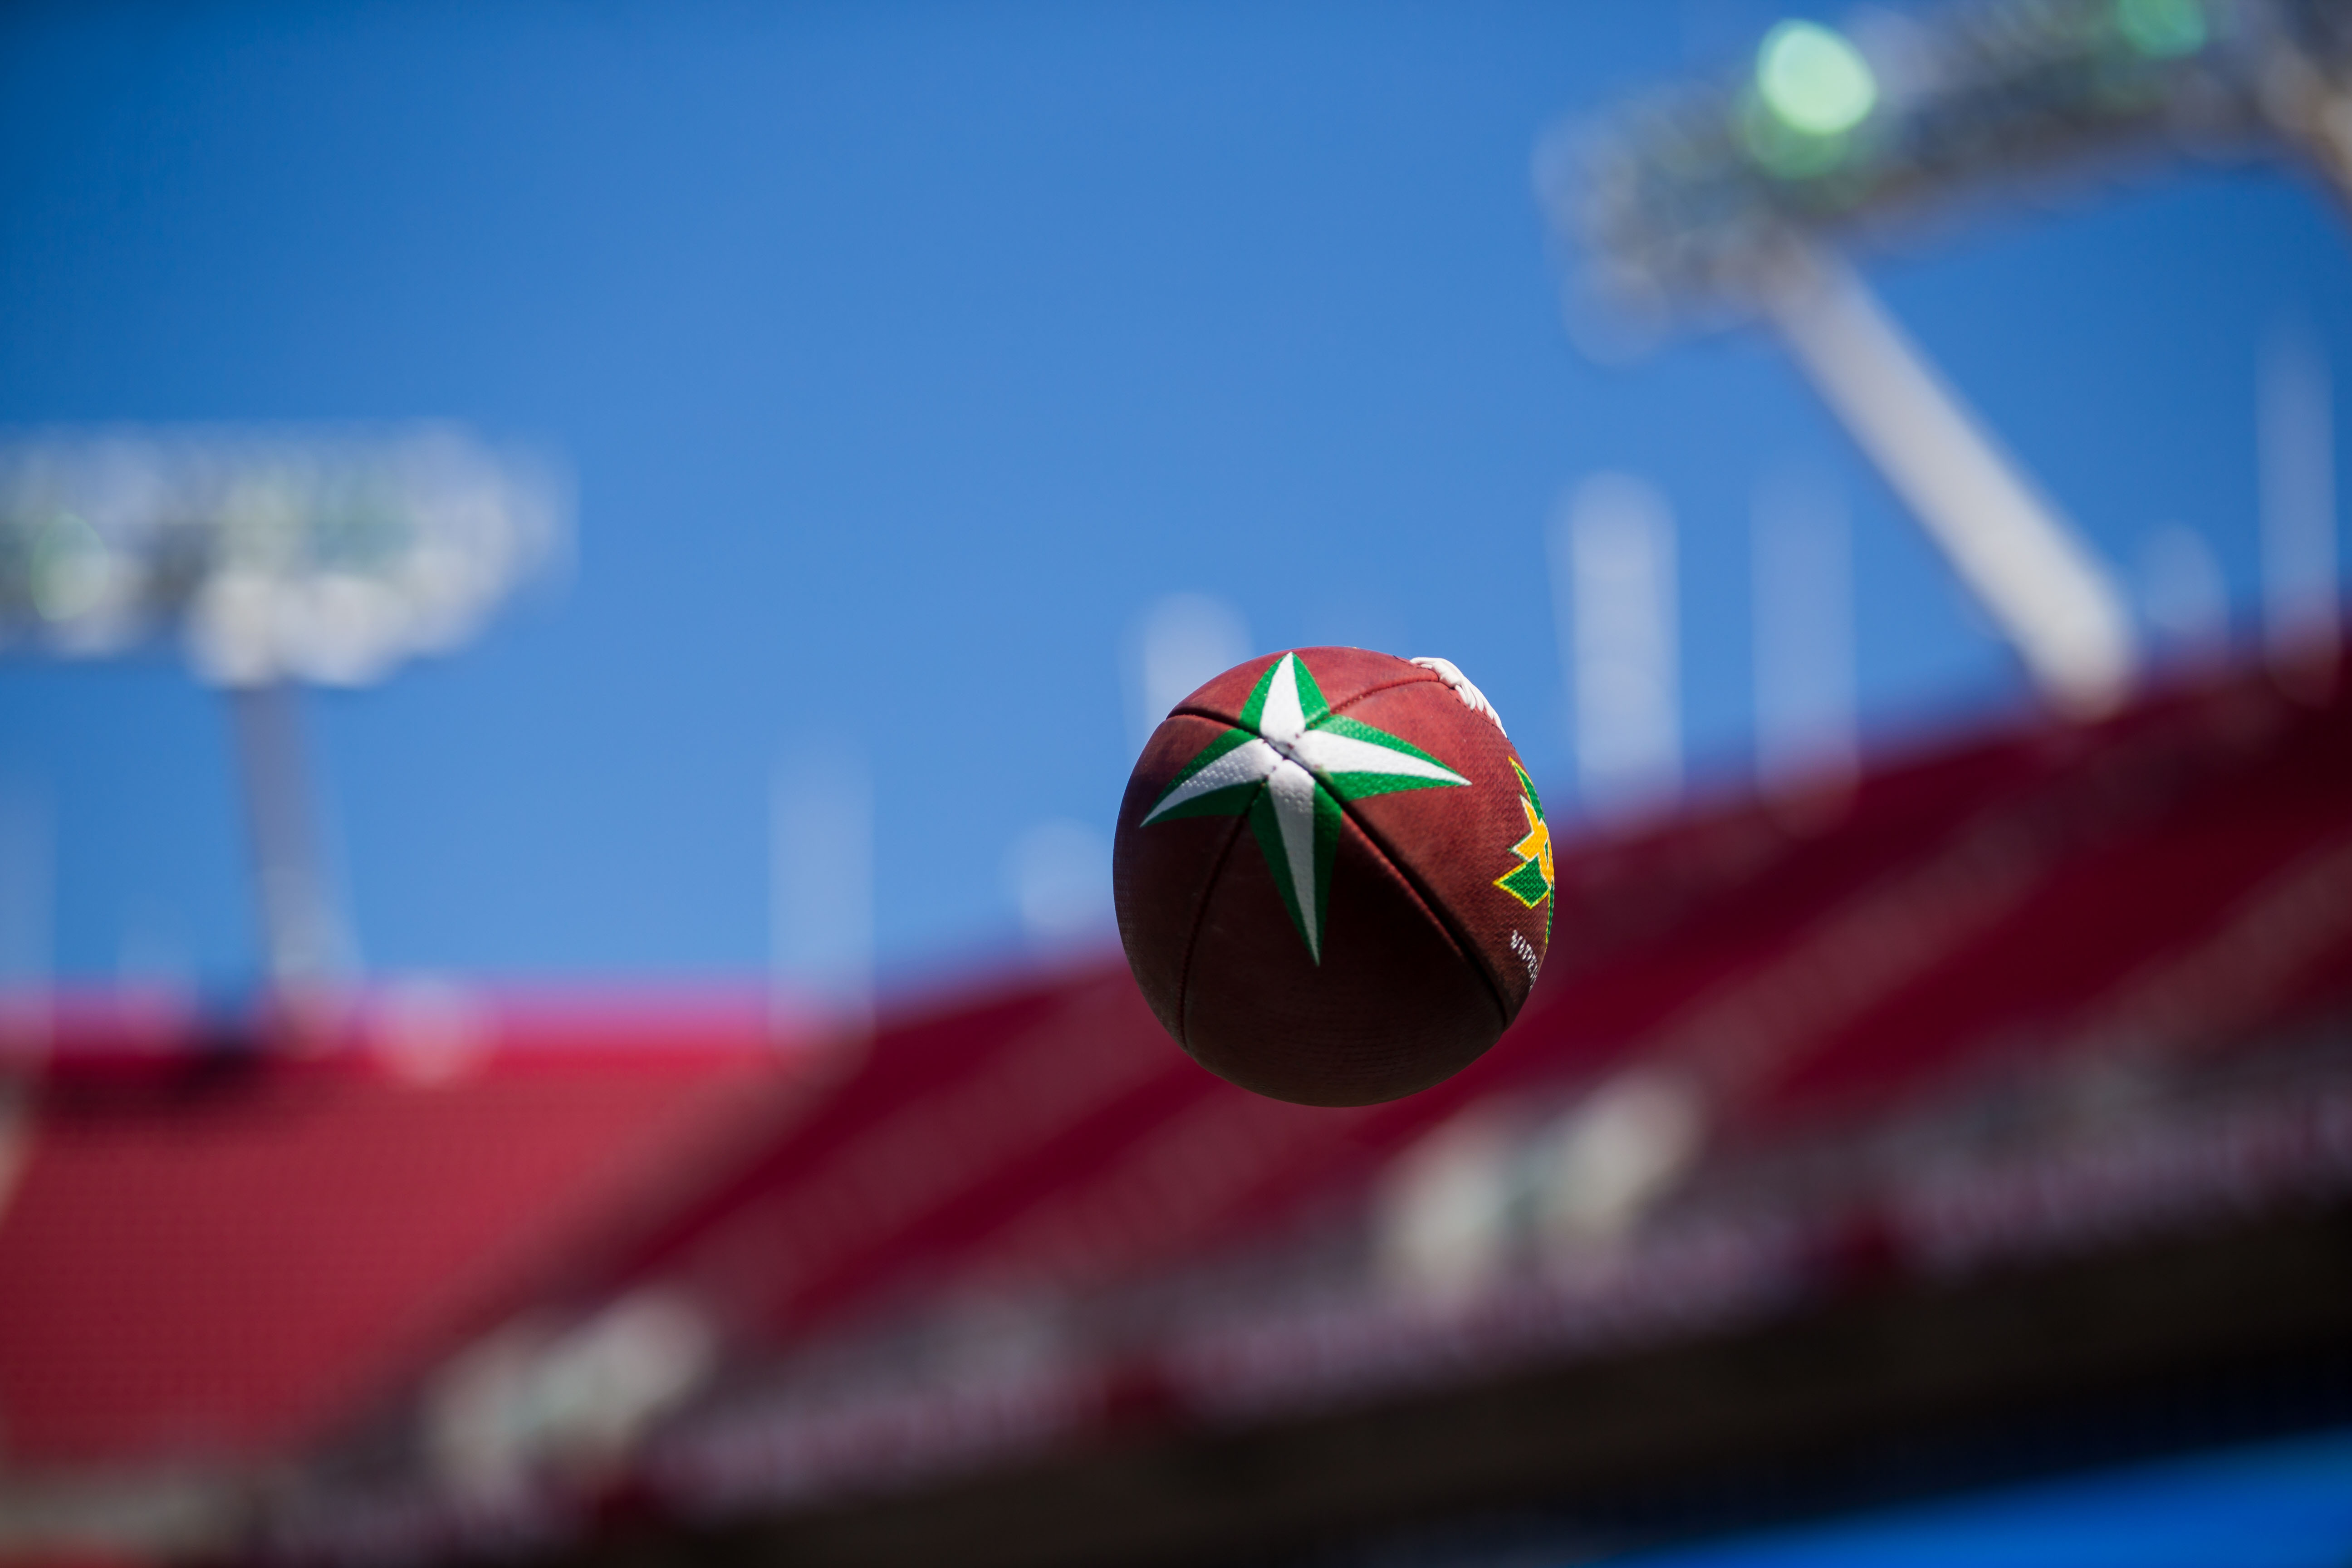 A football with the XFL design spirals through the air during warmups before a game between the Houston Roughnecks and the Tampa Bay Vipers at Raymond James Stadium.